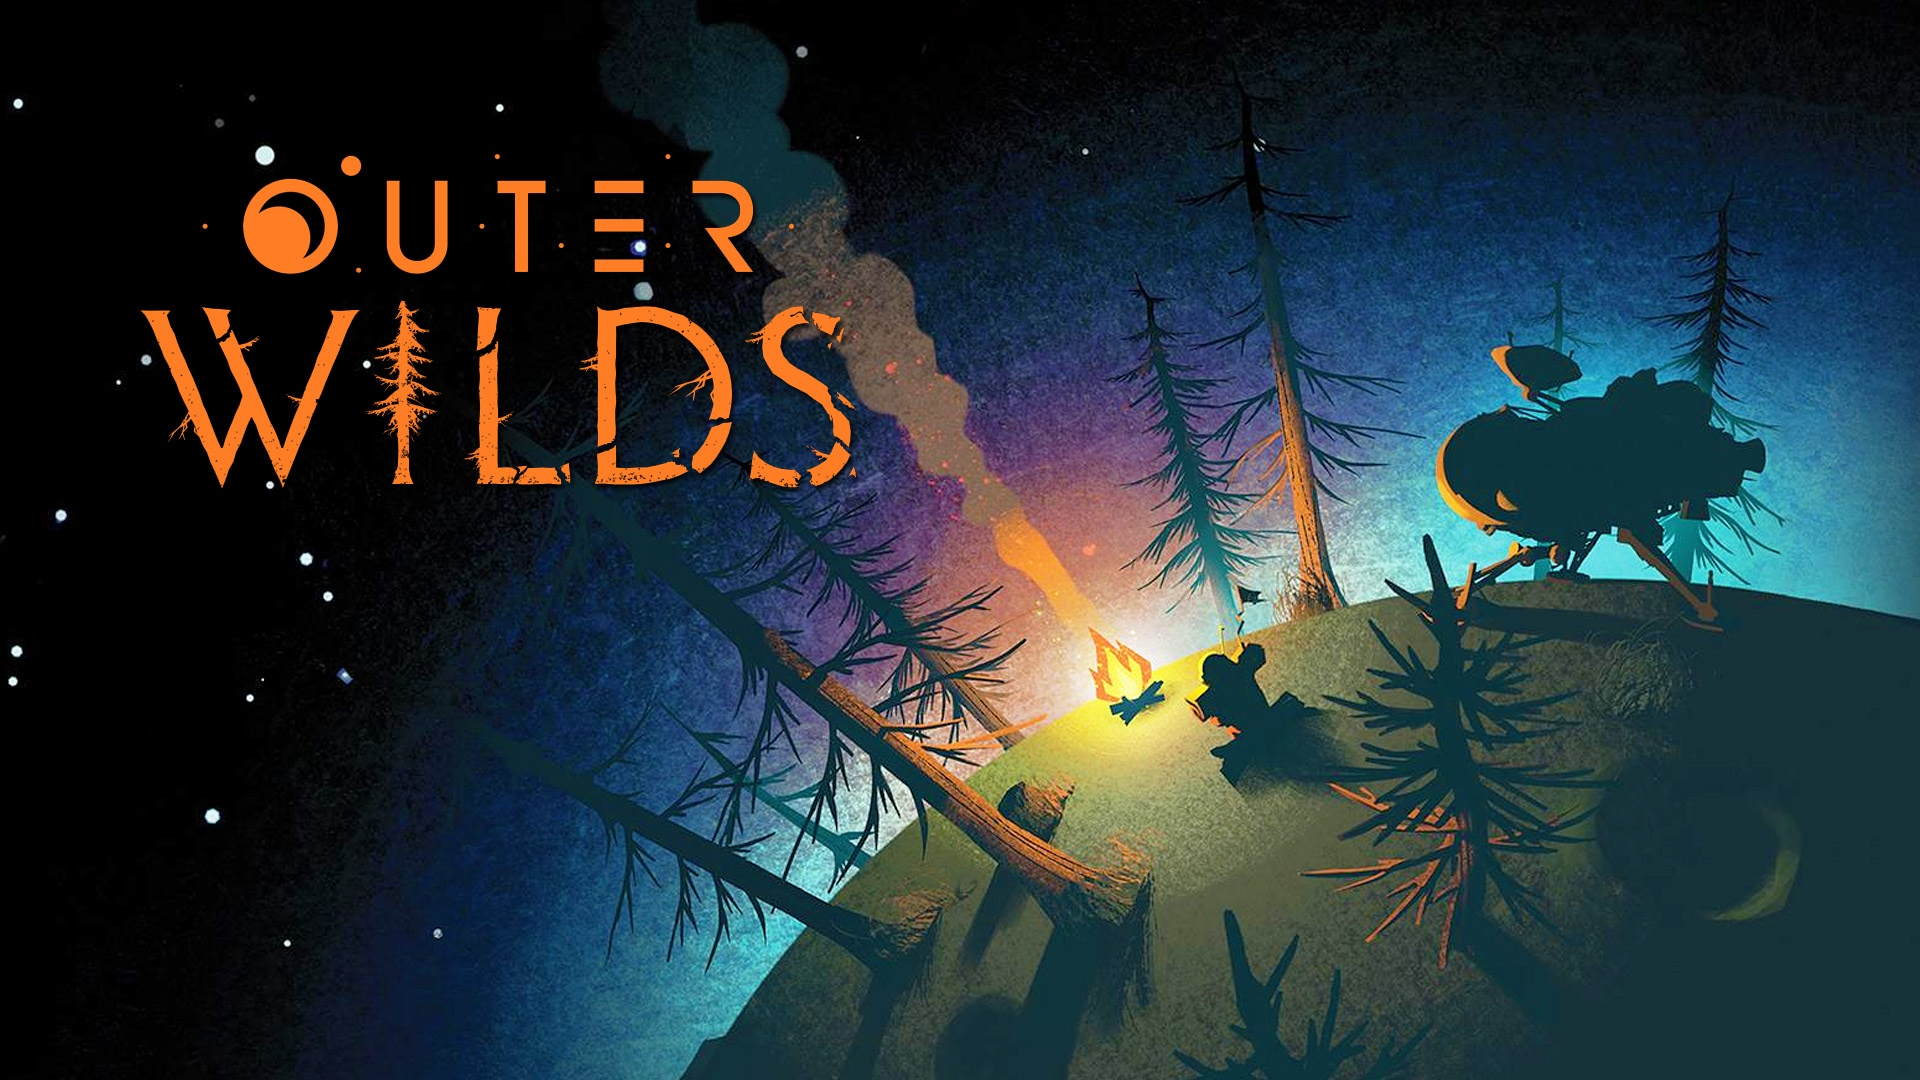 Time Loops and the End of the World: Analysing Outer Wilds